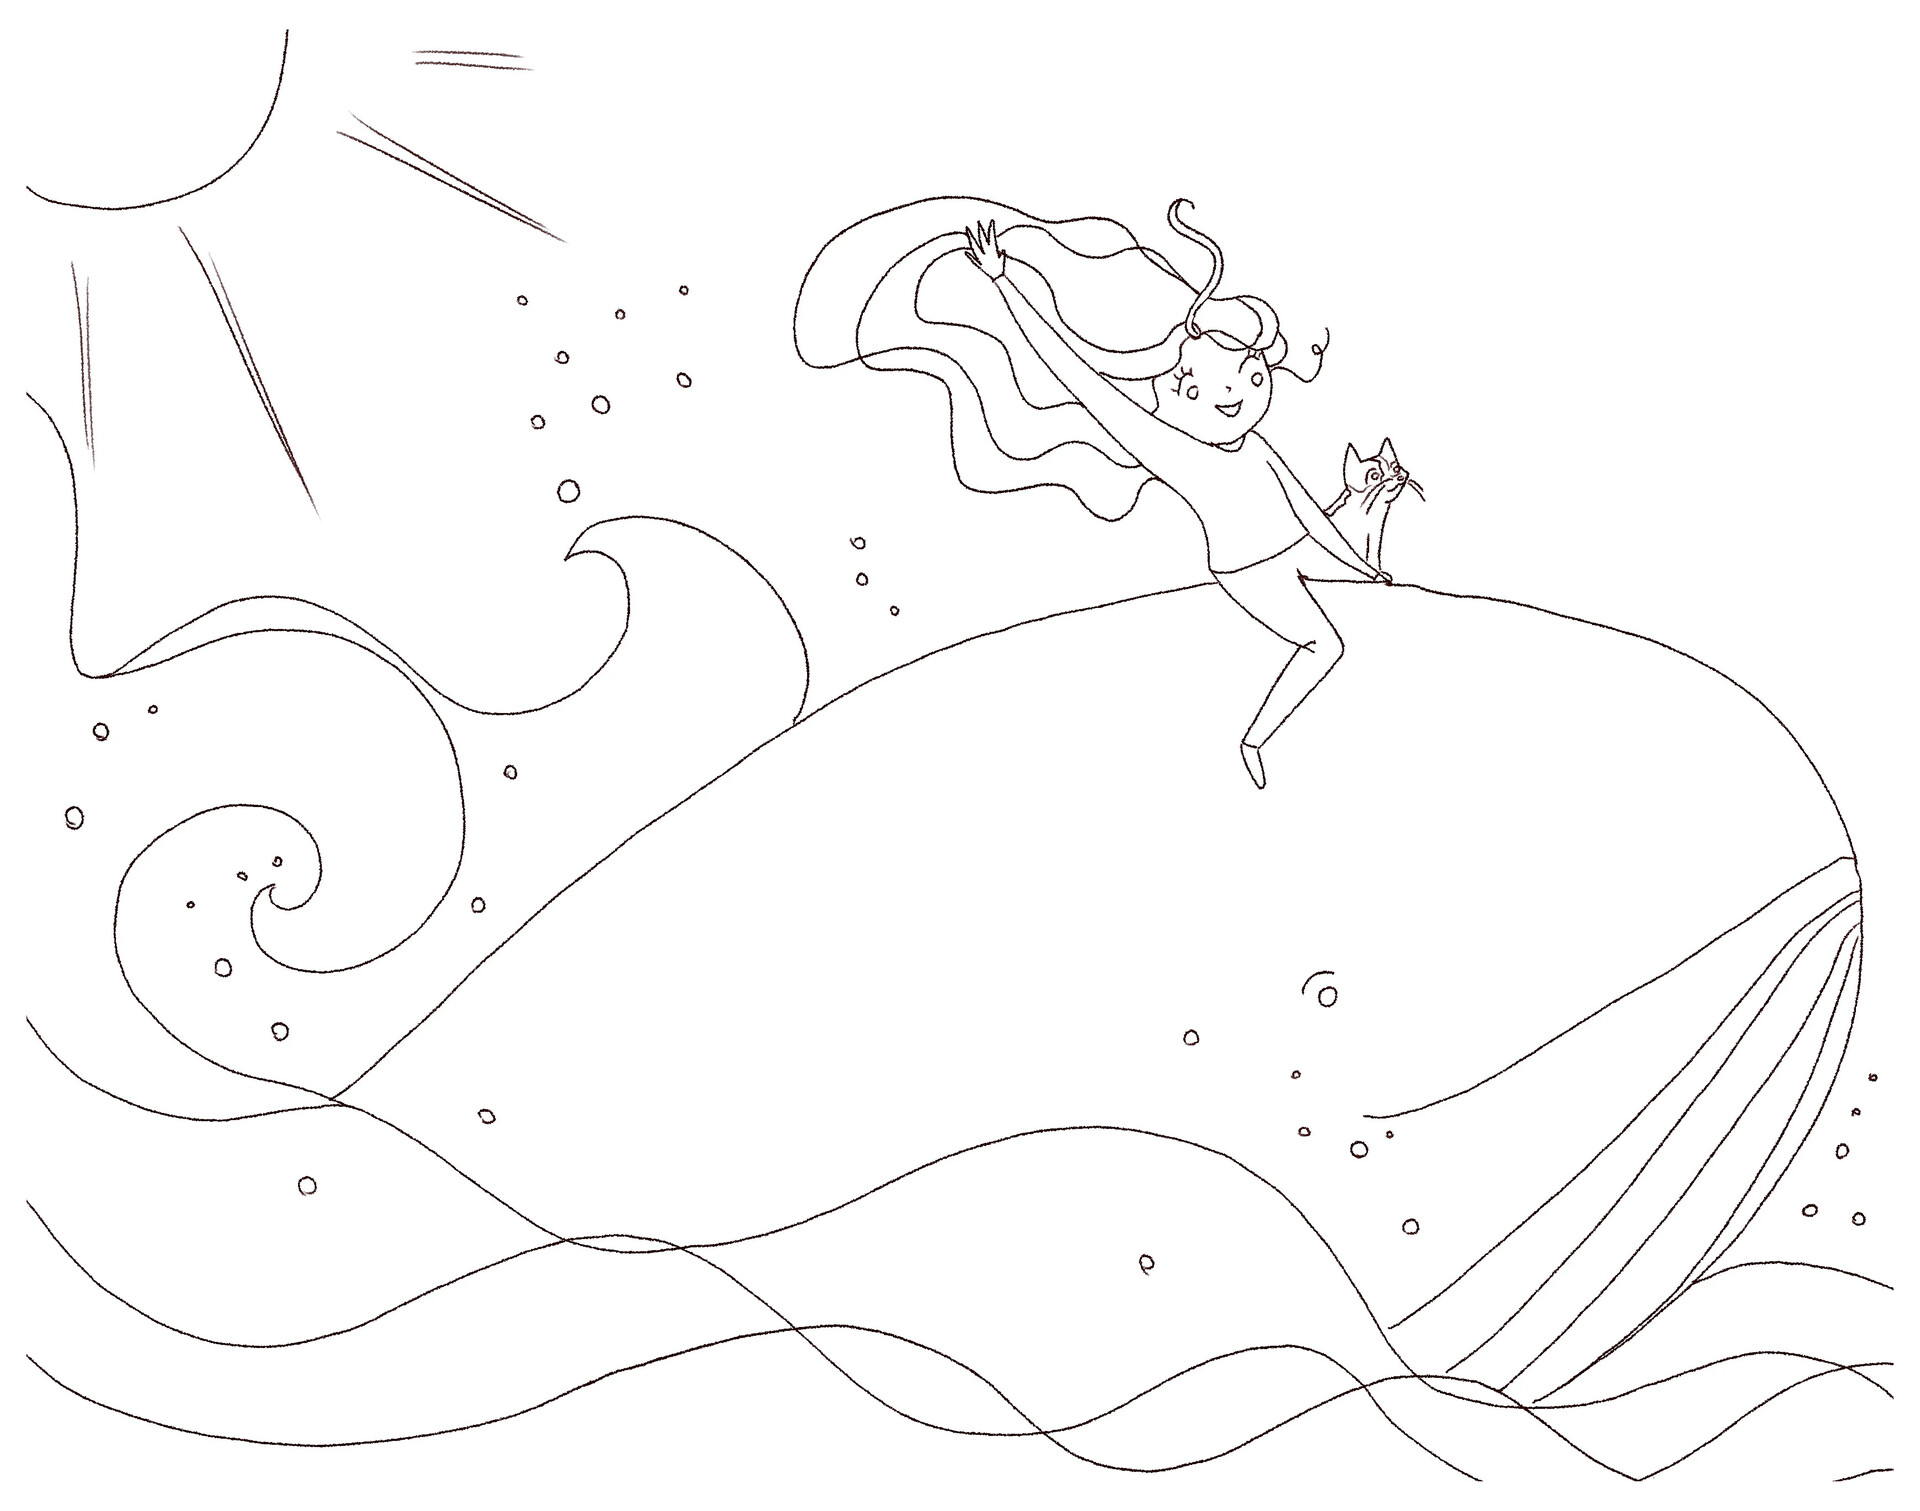 Rough composition sketch, as provided by client (Artist credit: Elettra Cudignotto)